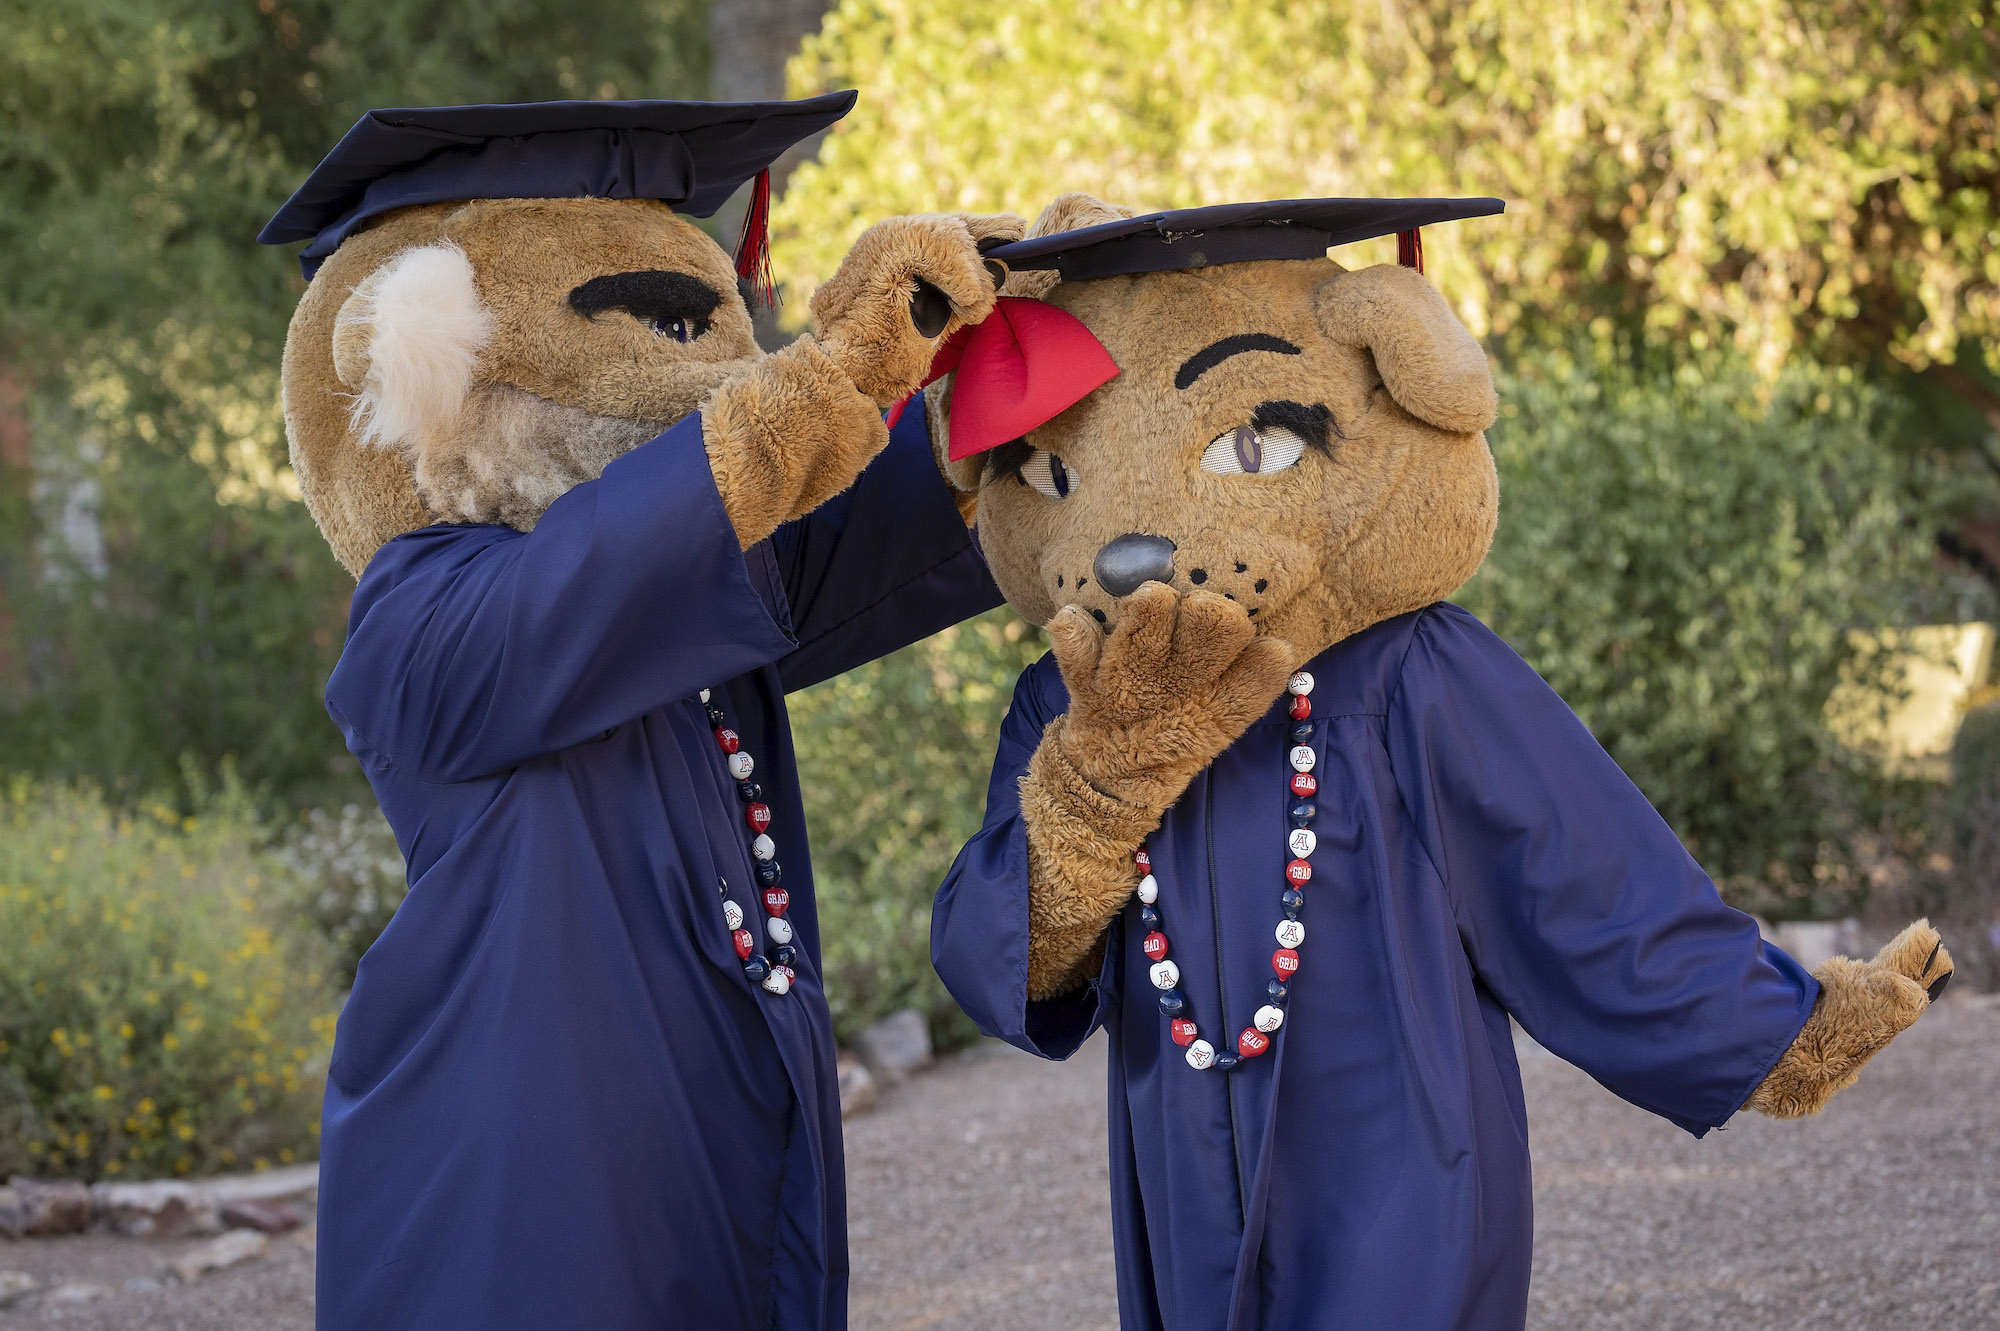 University mascots Wilbur and Wilma during filming for the virtual 2020 Commencement ceremony.